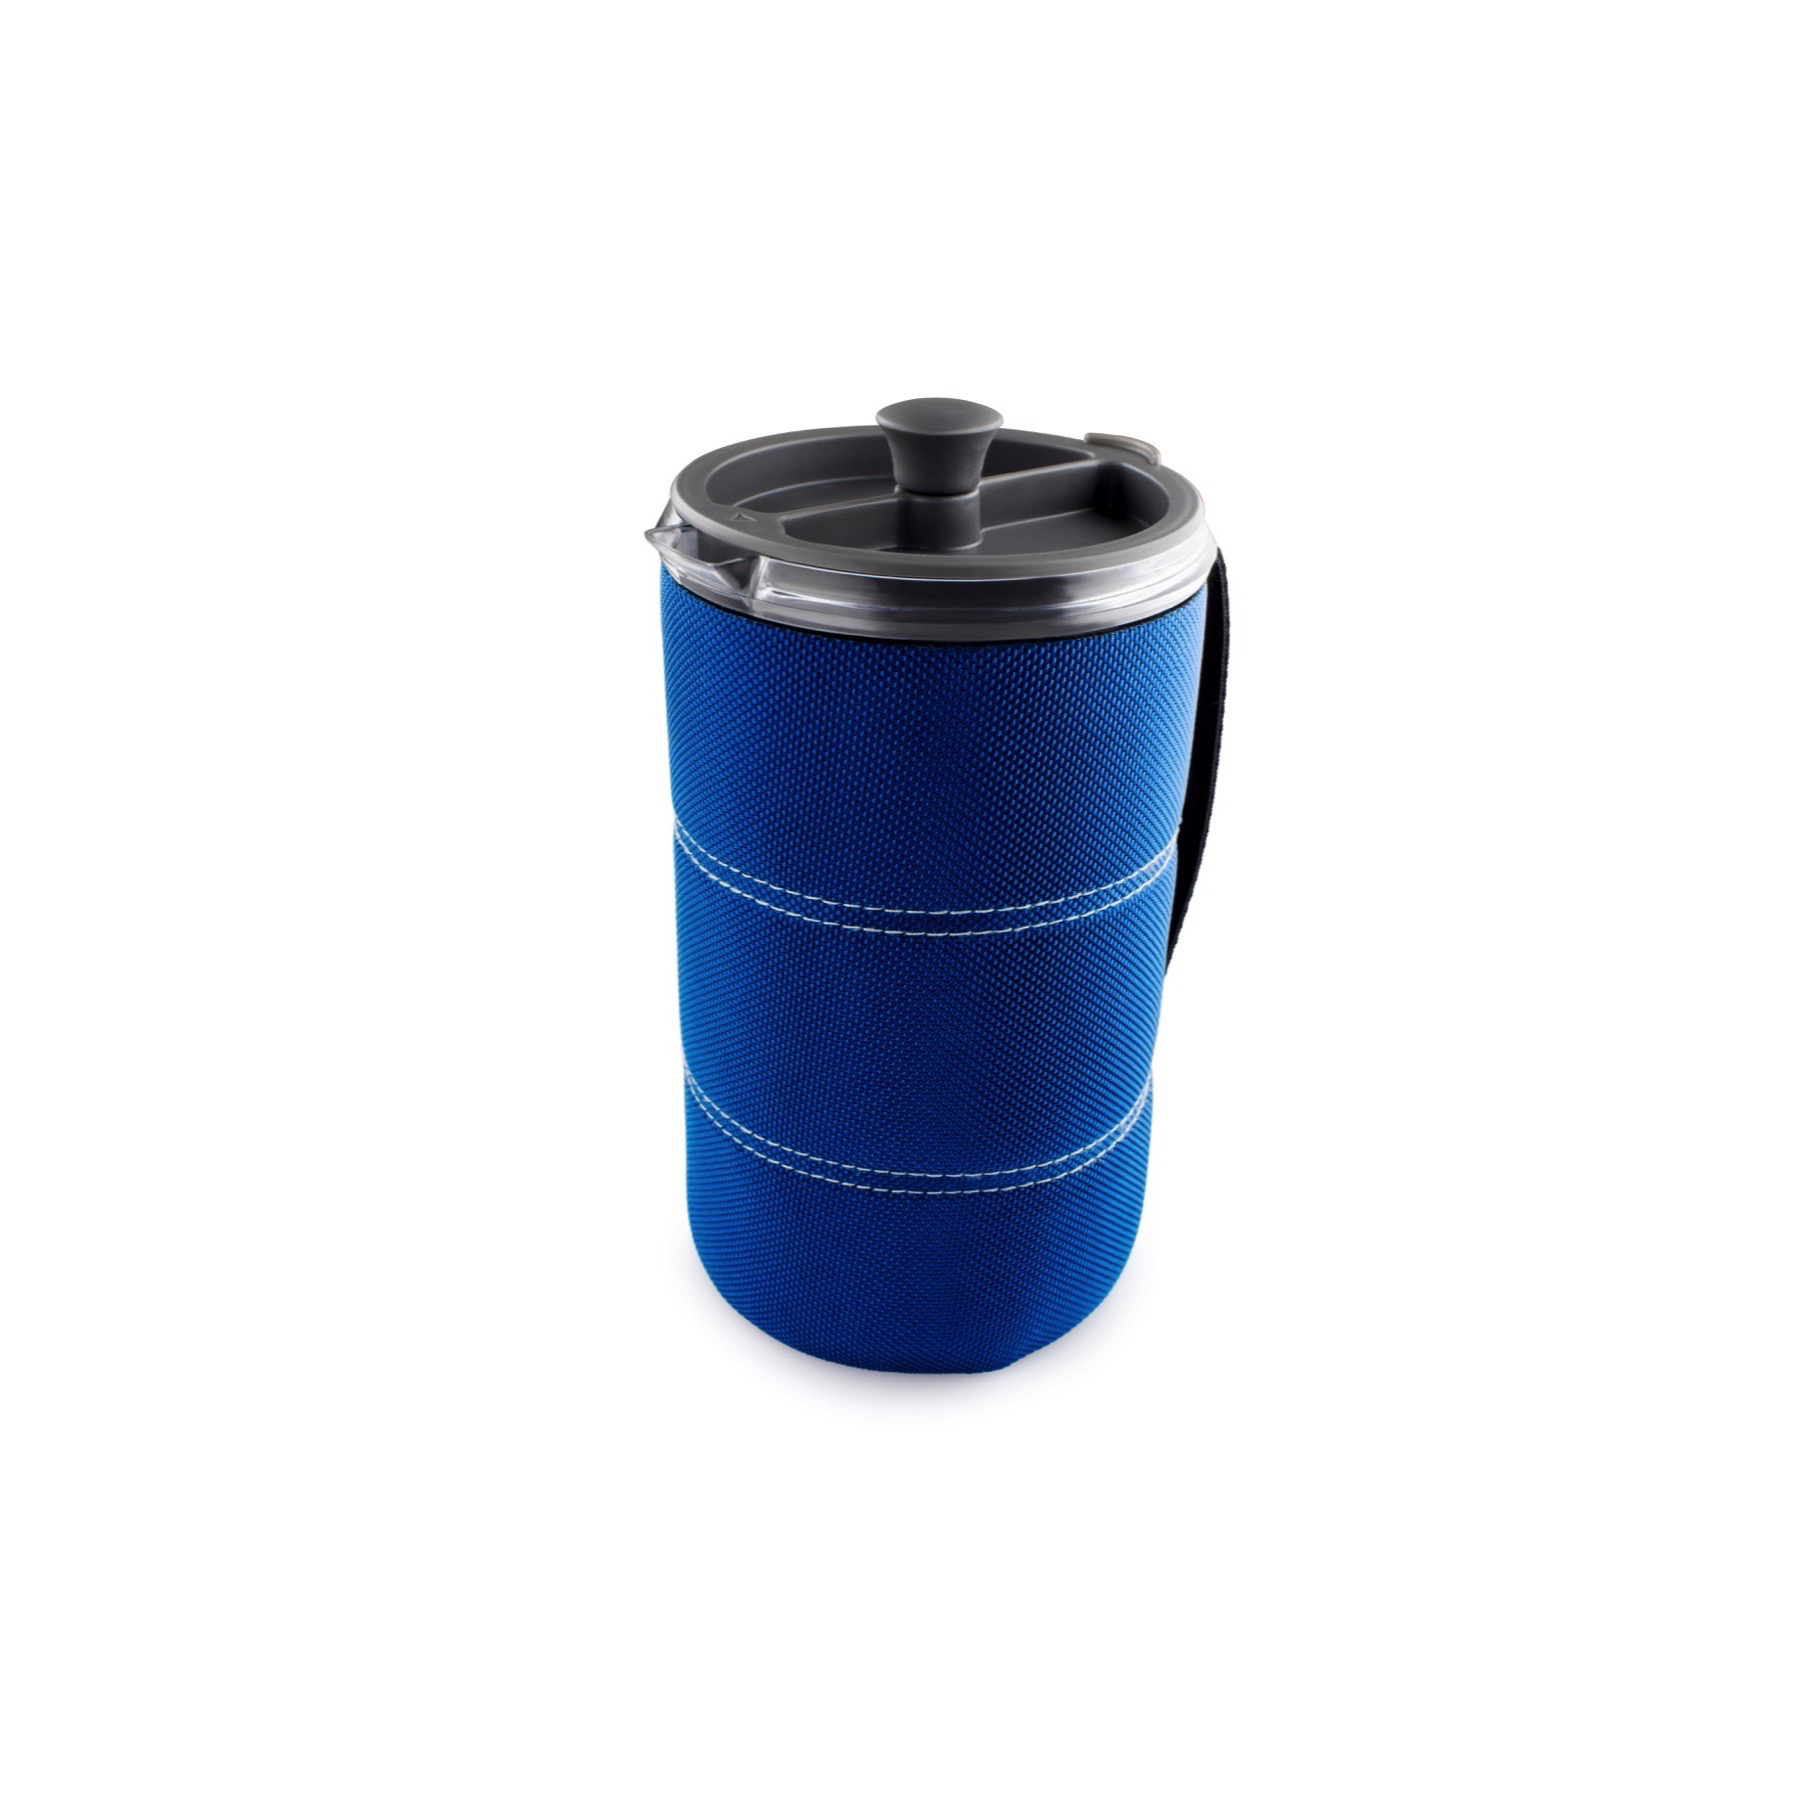 French Press Coffee Maker For Camping : GSI Outdoors 30oz Java Press Blue French Press Coffee Maker Outdoor Camping eBay